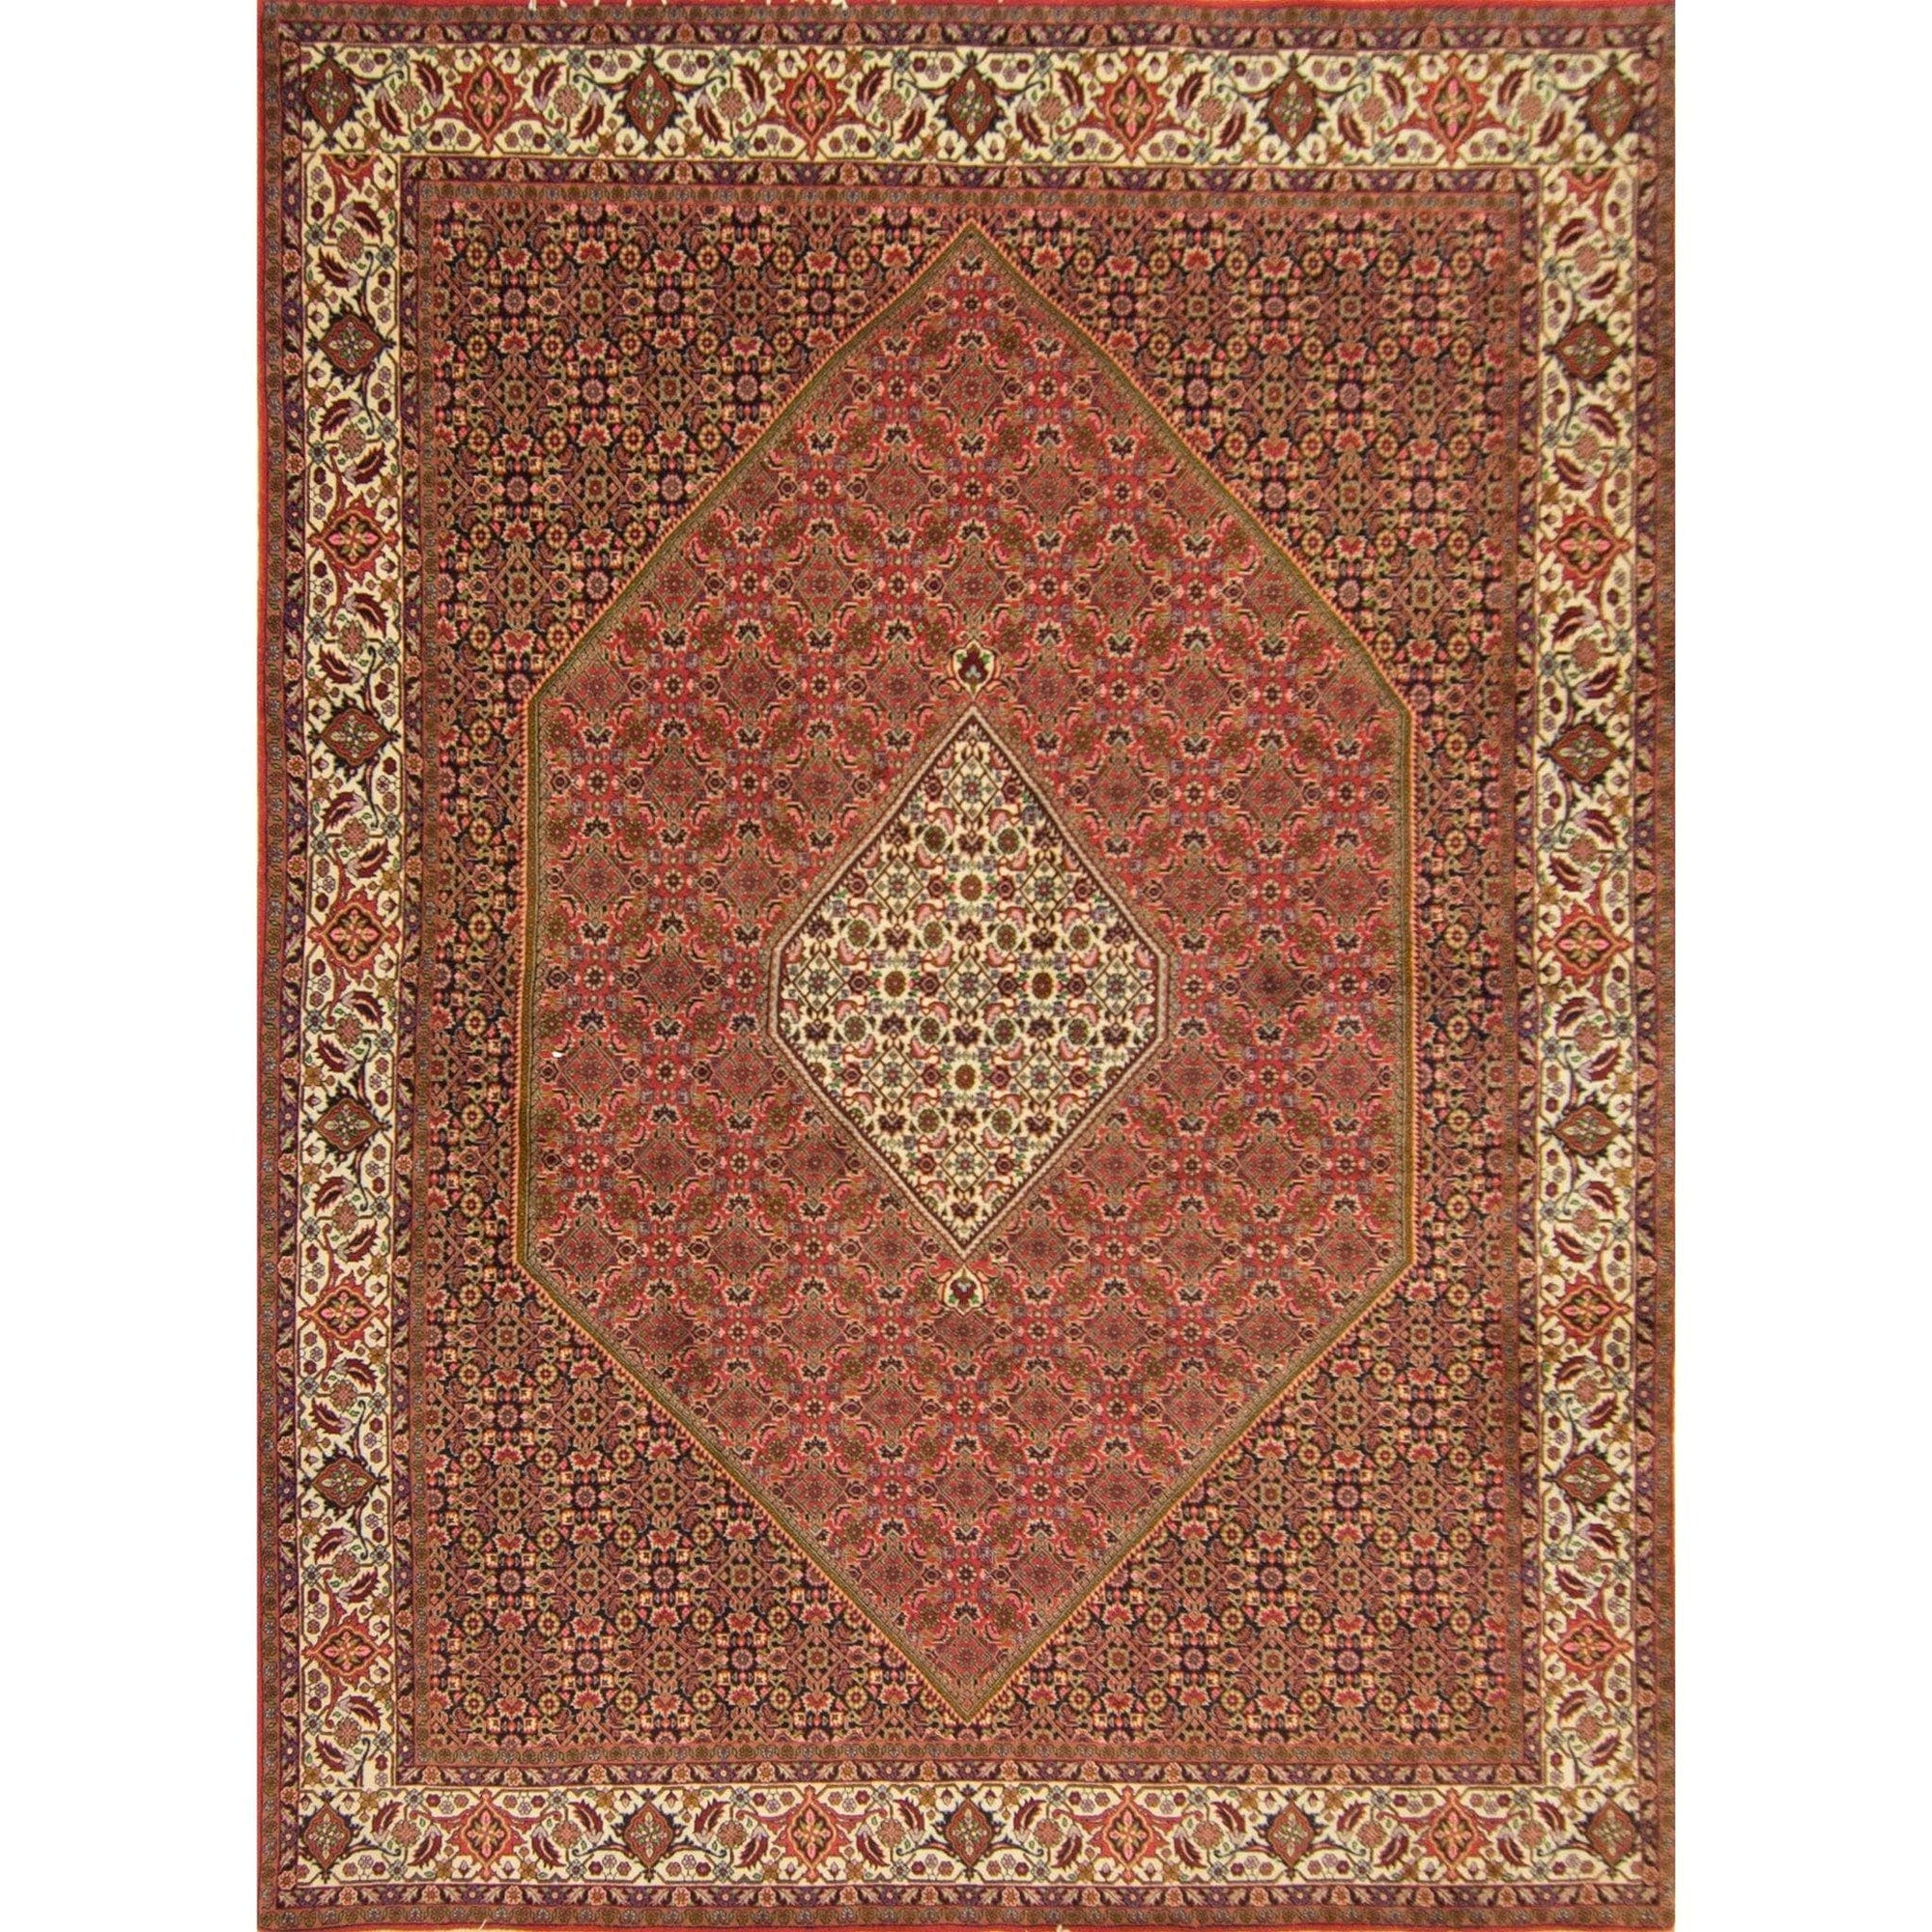 Super Fine Hand-knotted Persian Bijar Rug 246cm x 342cm Persian-Rug | House-of-Haghi | NewMarket | Auckland | NZ | Handmade Persian Rugs | Hand Knotted Persian Rugs